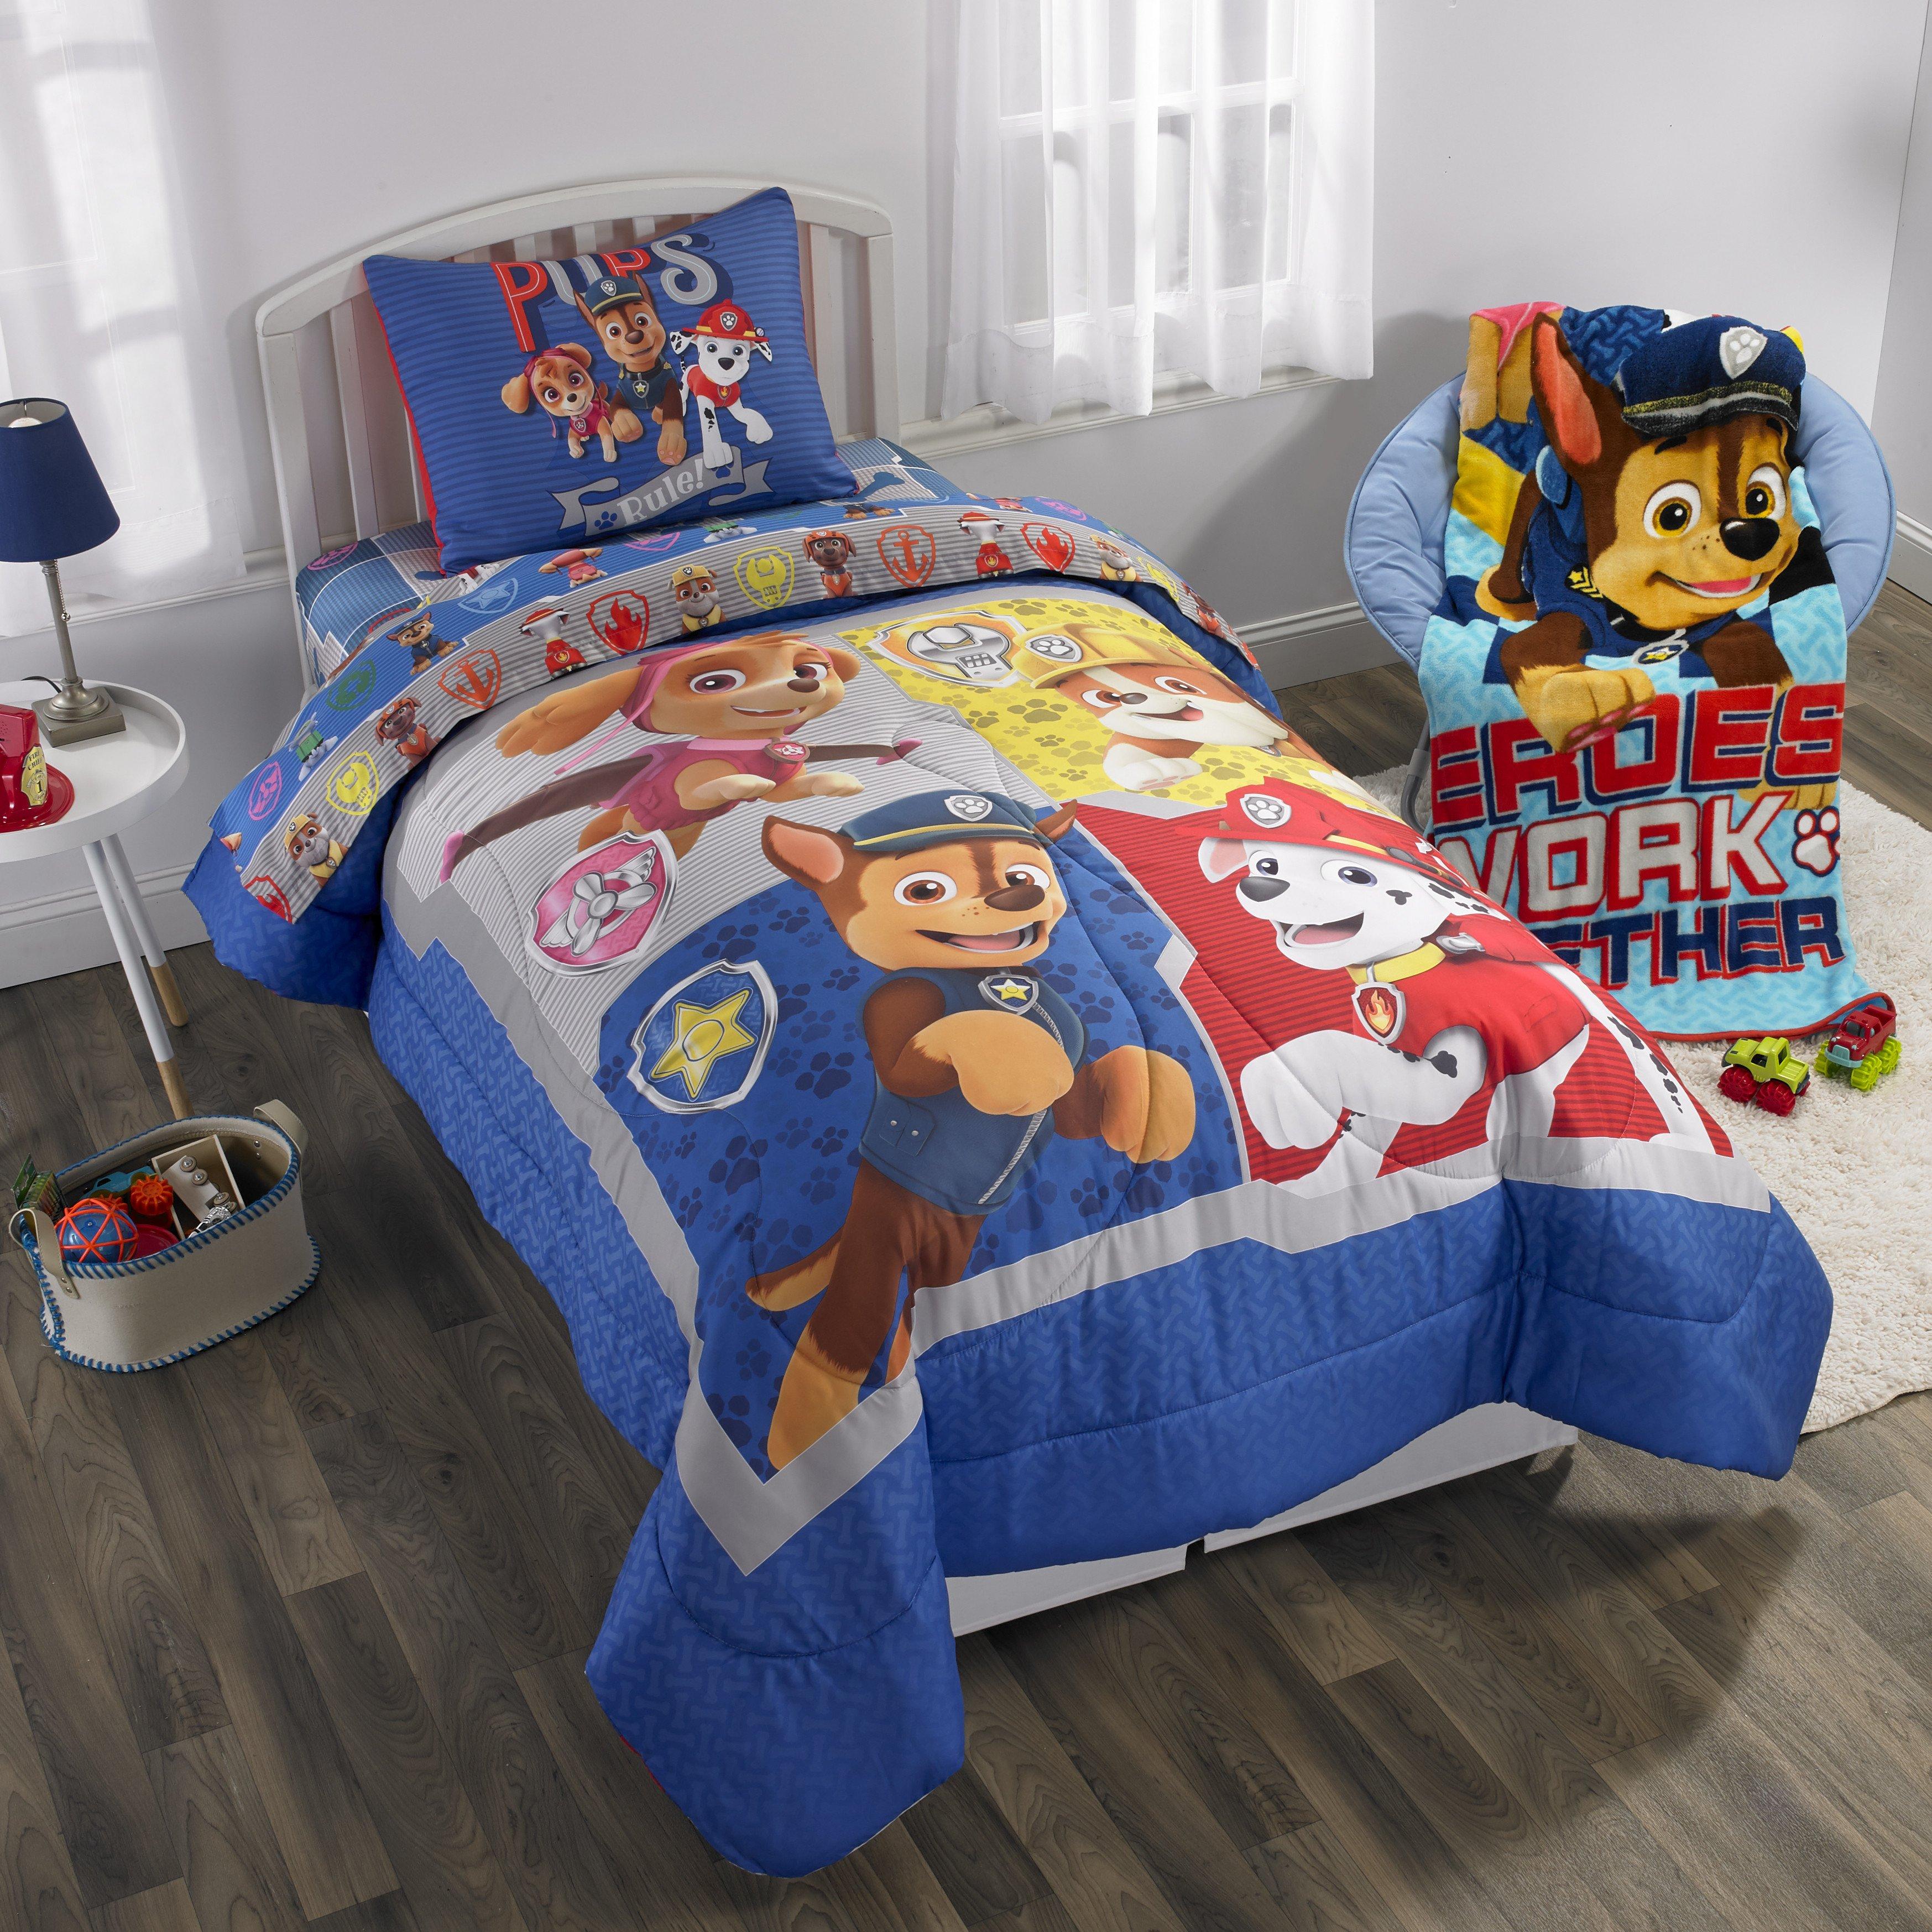 Paw Patrol Bedroom Set Luxury Awesome Bunk Bed Buddy — Beautiful Furniture Home Ideas